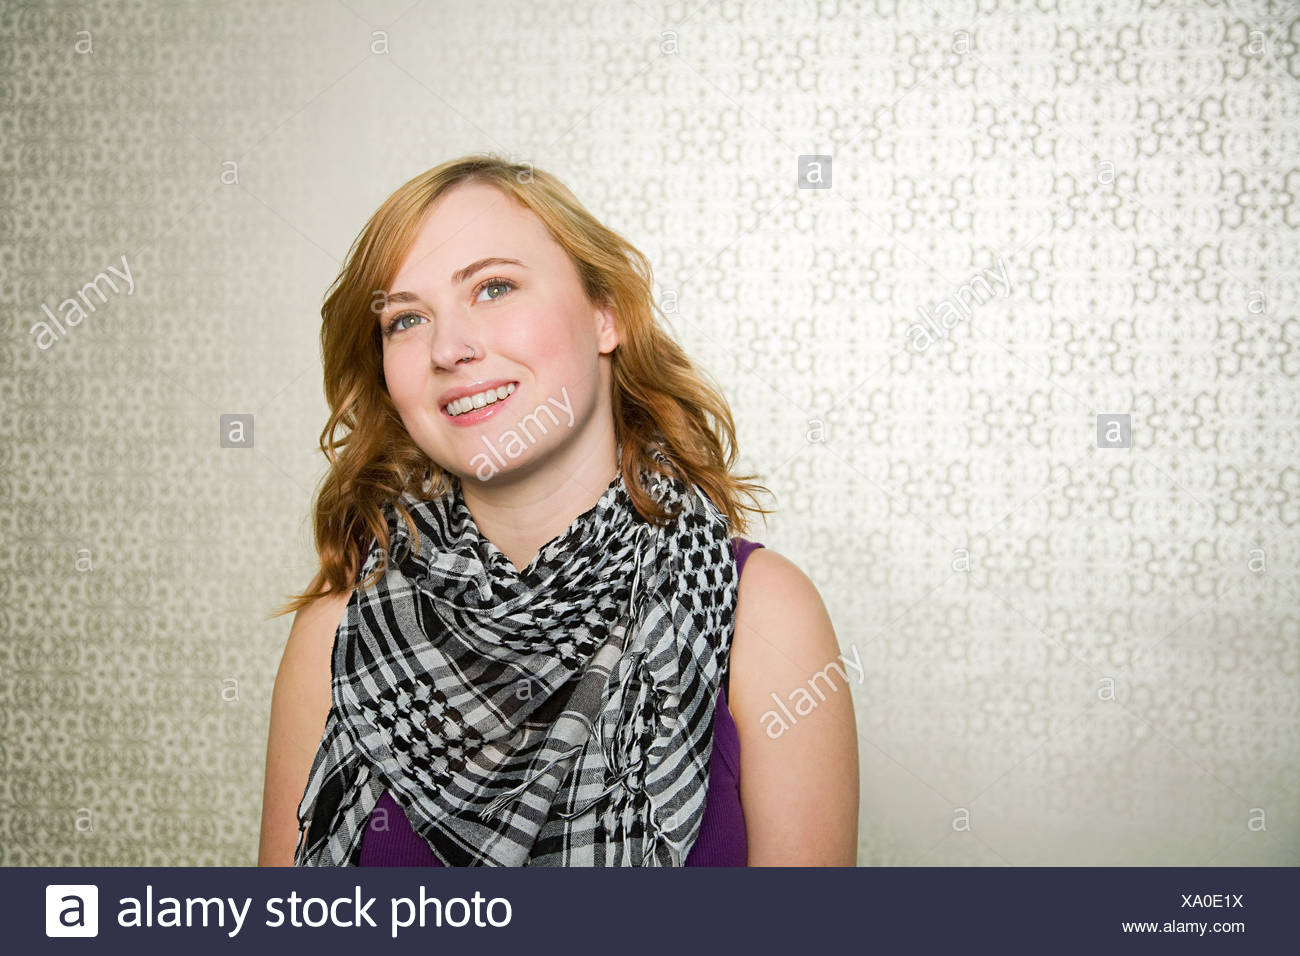 c044f0744f1 Checked Pattern Stock Photos & Checked Pattern Stock Images - Alamy